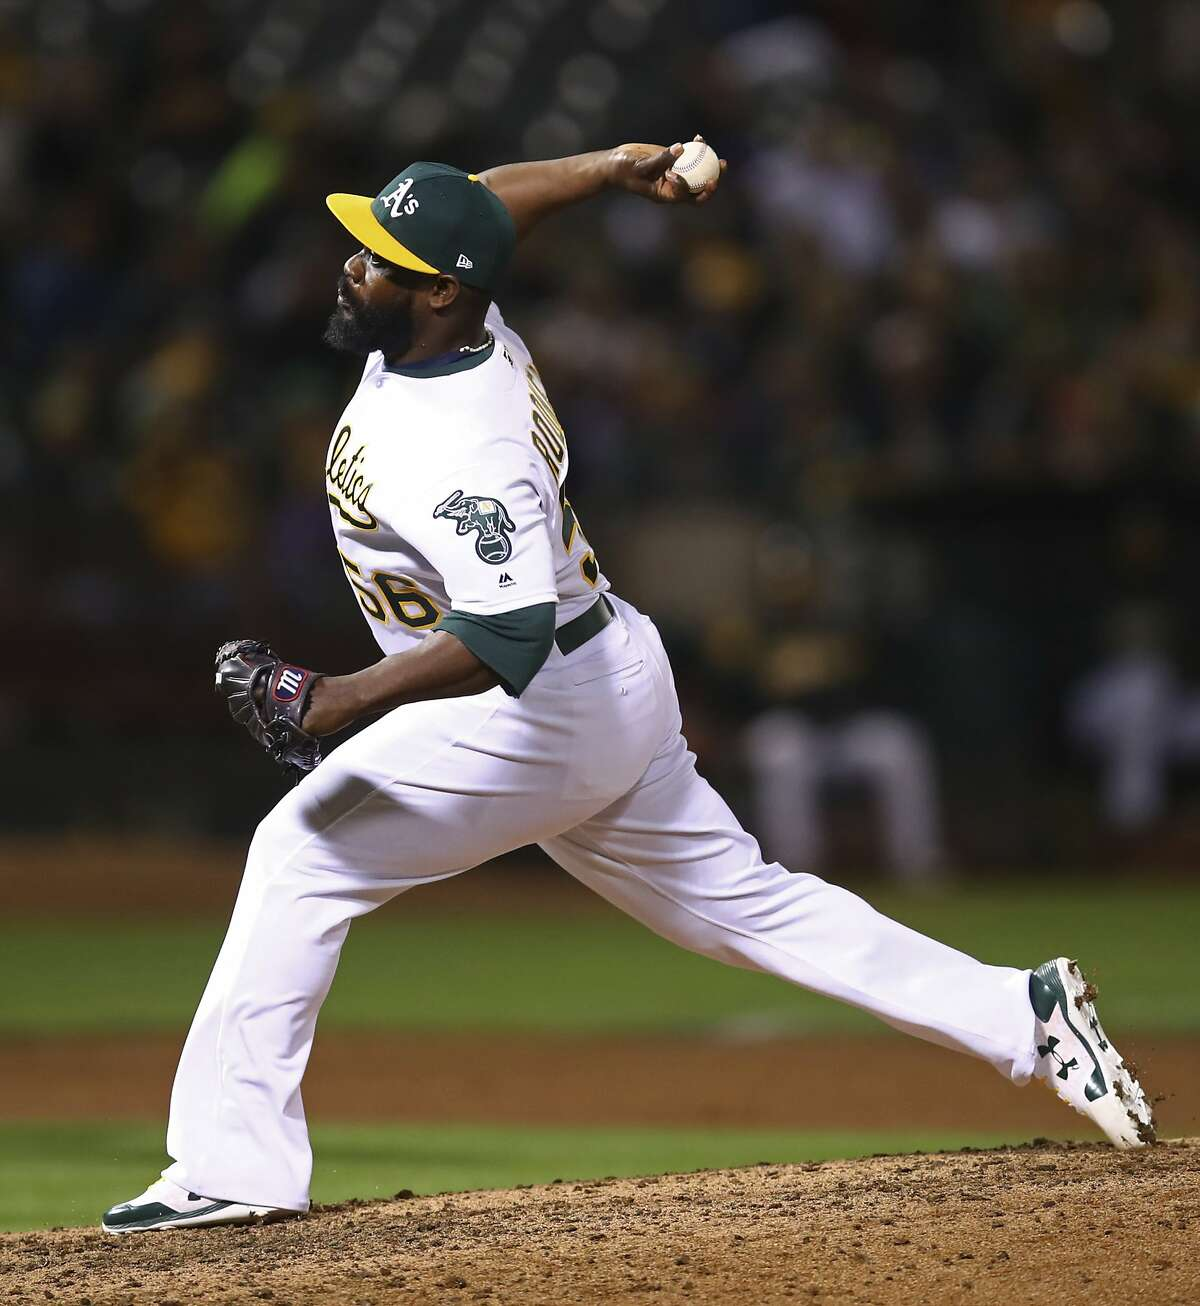 Oakland Athletics' Fernando Rodney works against the Seattle Mariners in the eighth inning of a baseball game Tuesday, Aug. 14, 2018, in Oakland, Calif. (AP Photo/Ben Margot)